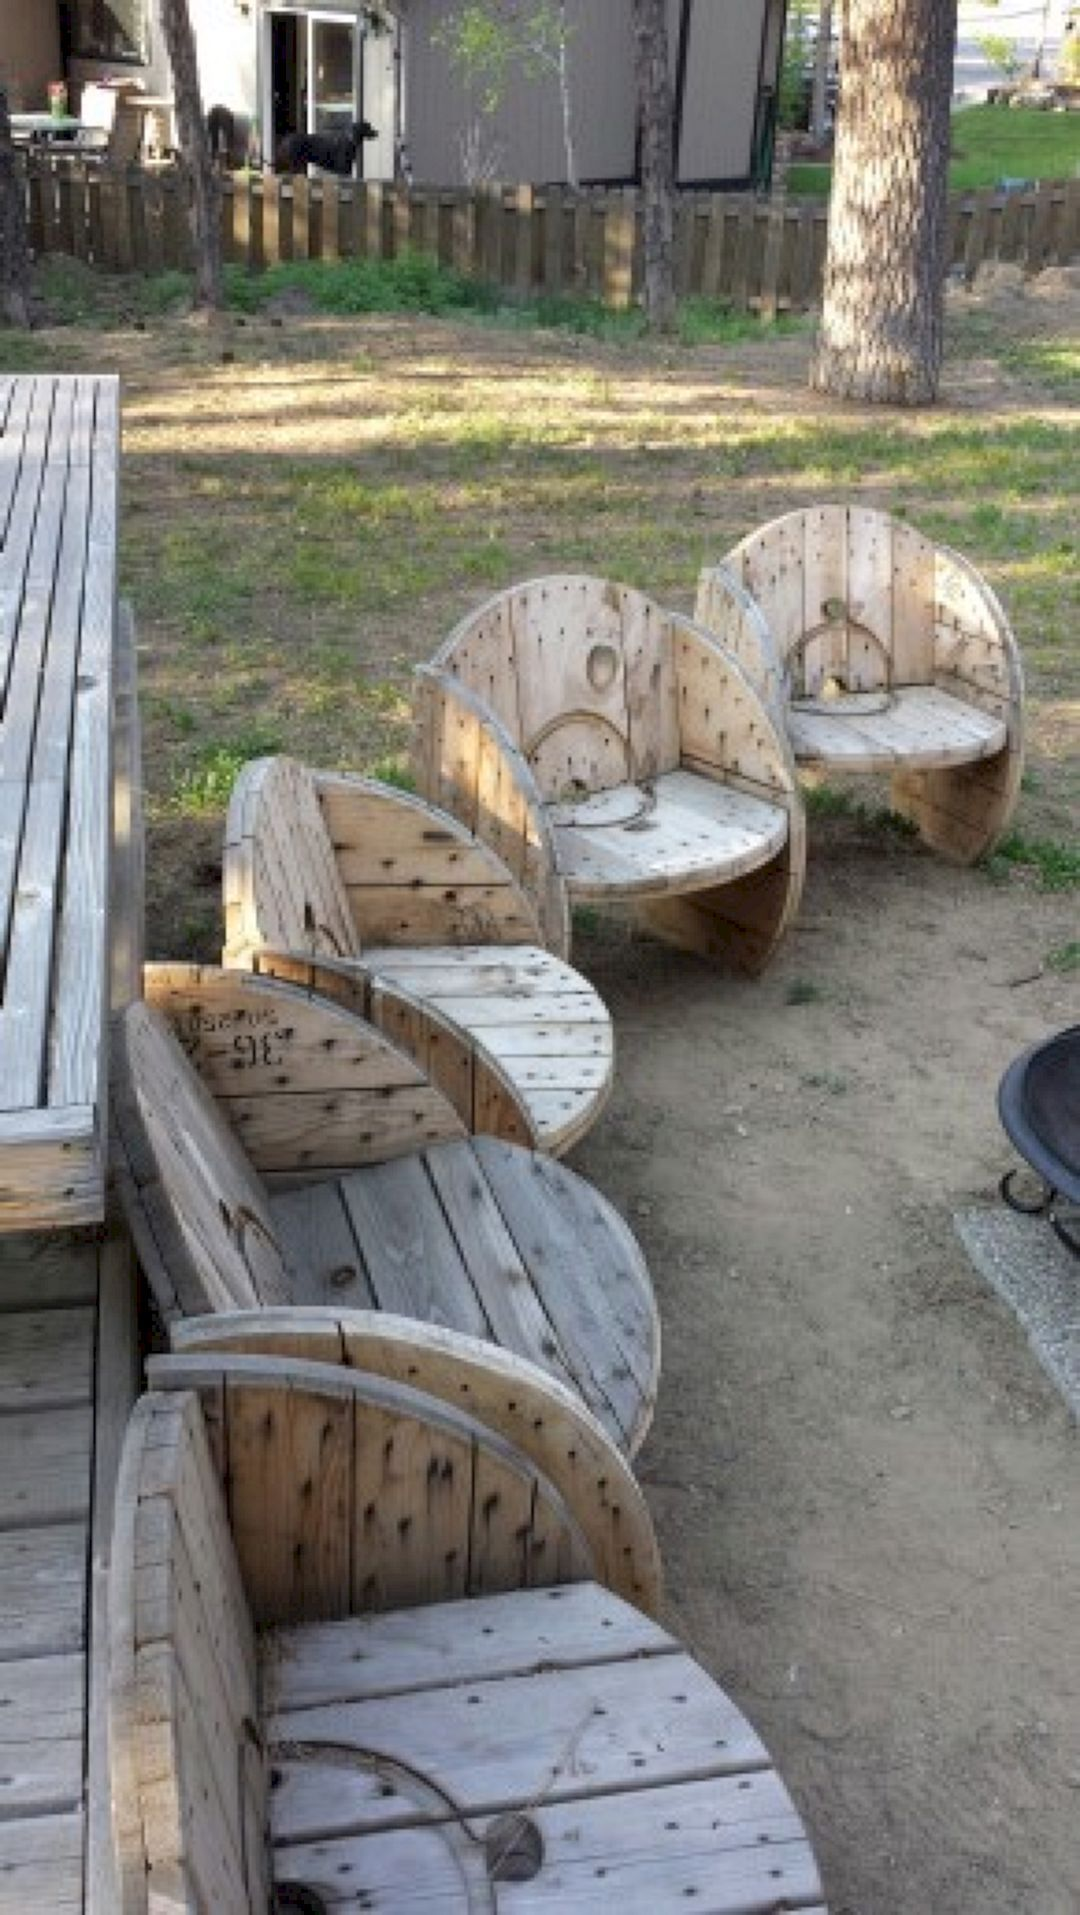 Marvelous Diy Recycled Wooden Spool Furniture Ideas For Your Home No 32 (Marvelous Diy Recycled Wooden Spool Furniture Ideas For Your Home No 32) design ideas and photos